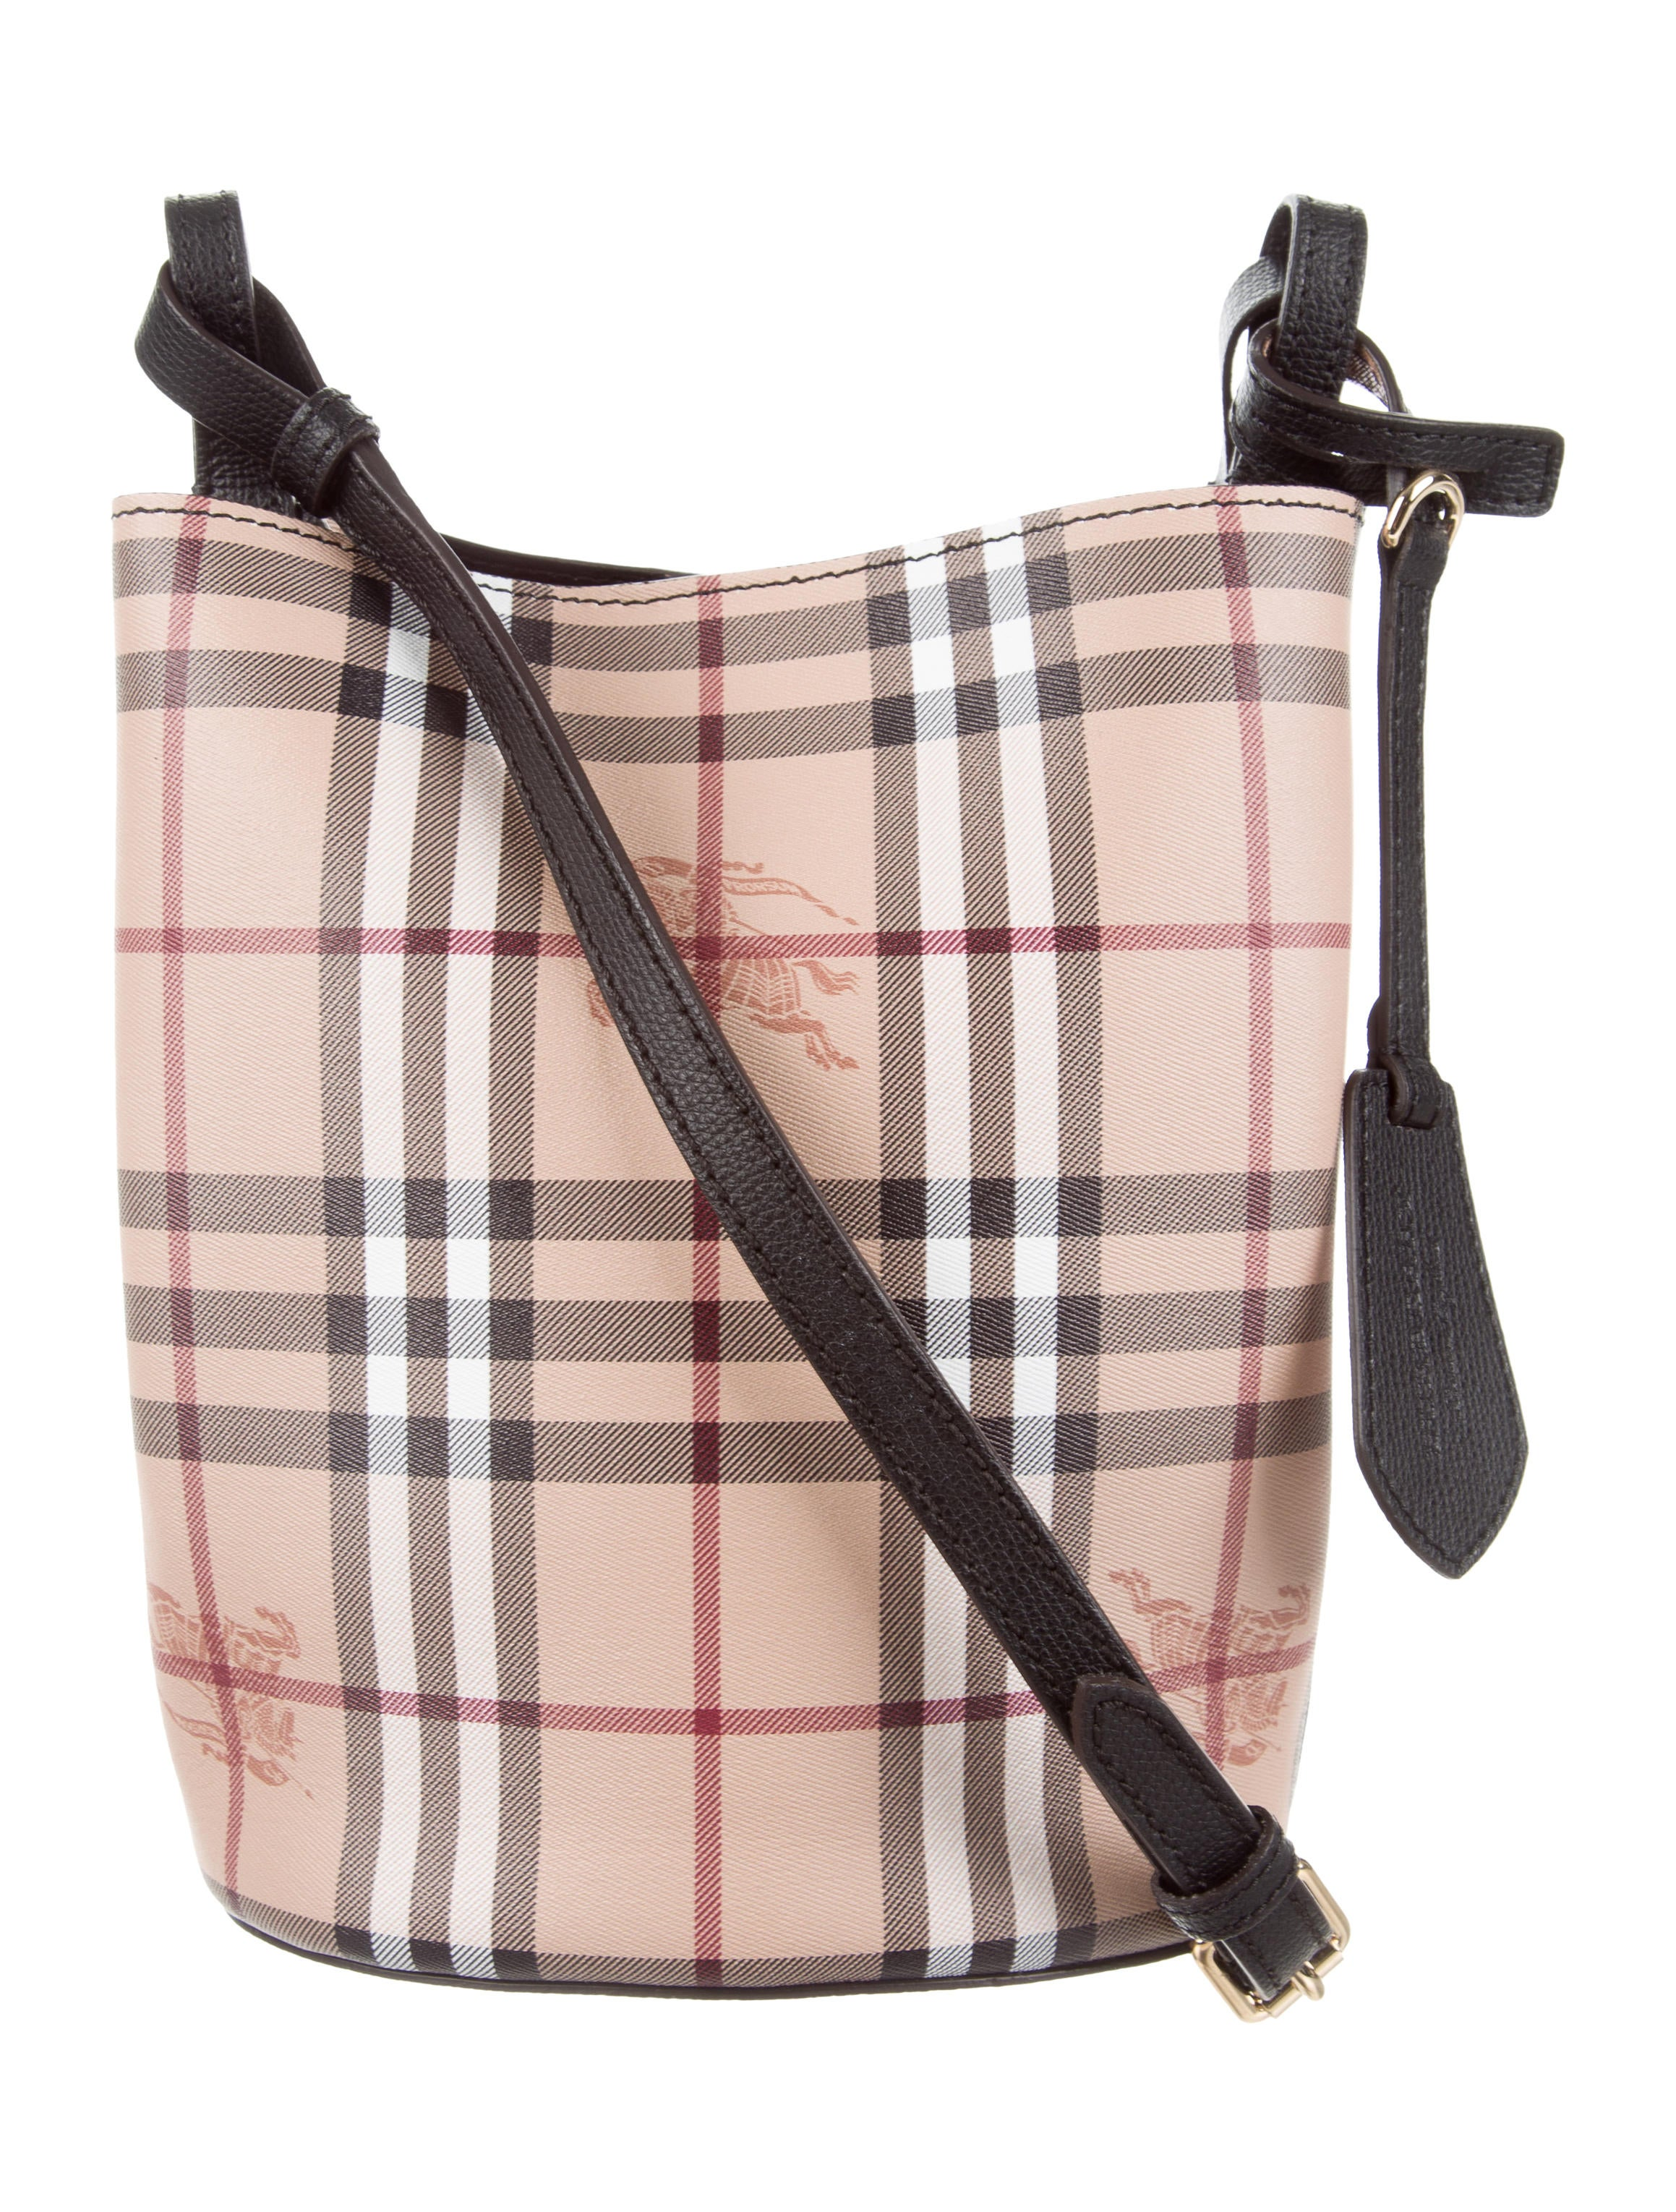 c31c2927424c Burberry Small Haymarket Check Lorne Bucket Bag - Handbags ...